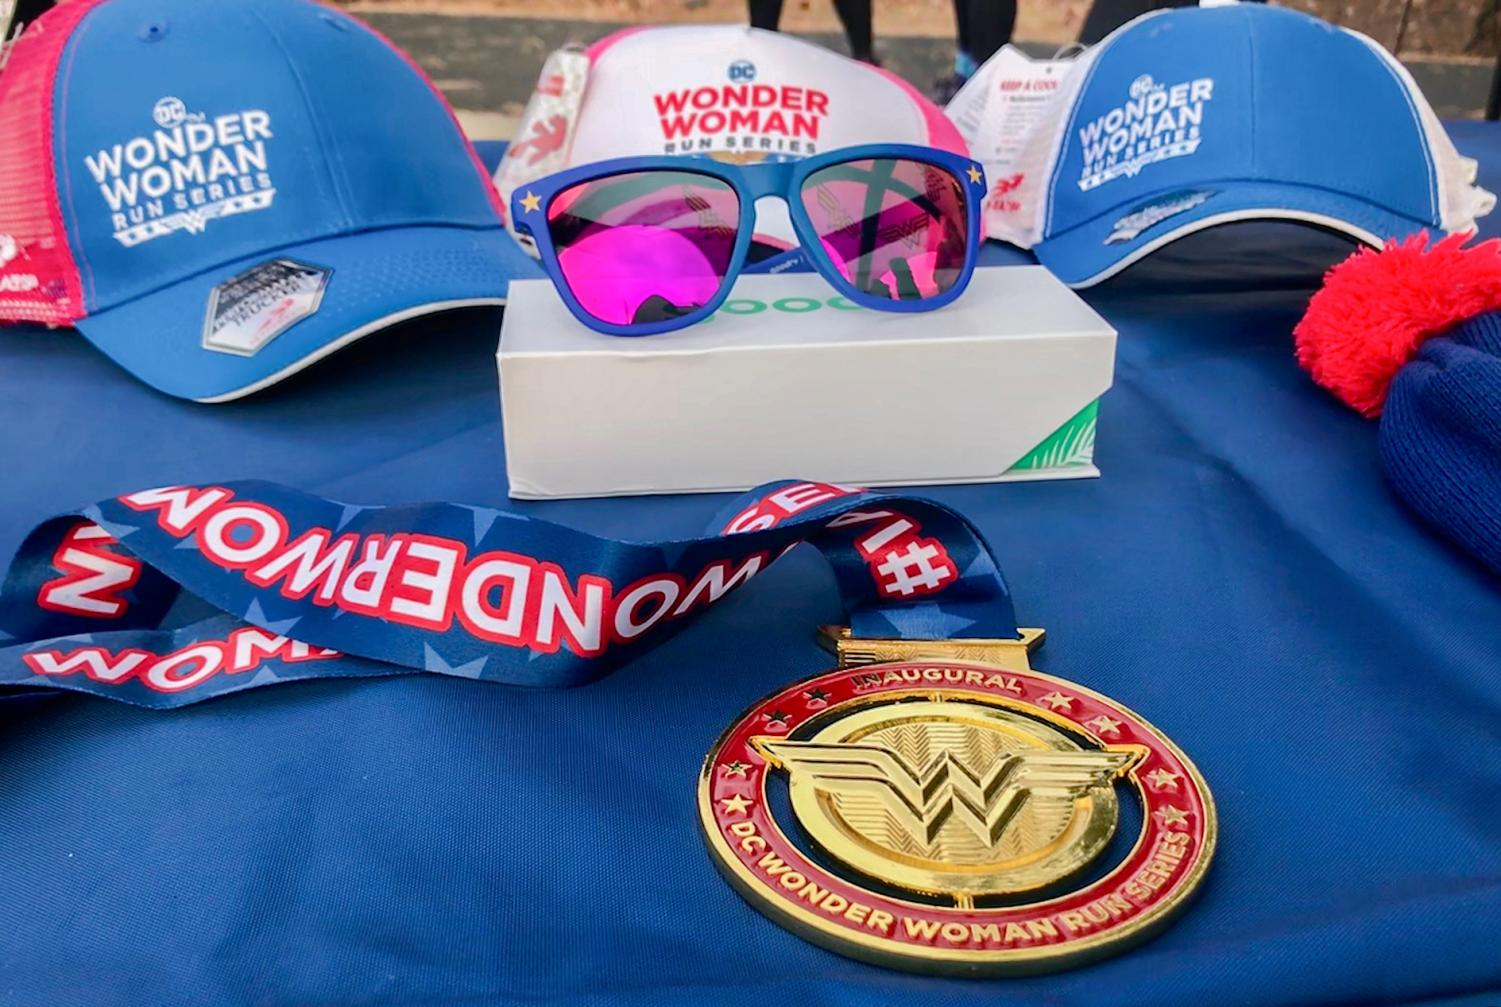 Everyone who participated in the Wonder Woman College Campus 5K run recieved a medal and could purchase other themed items Saturday morning at the Outdoor Recreation Center.